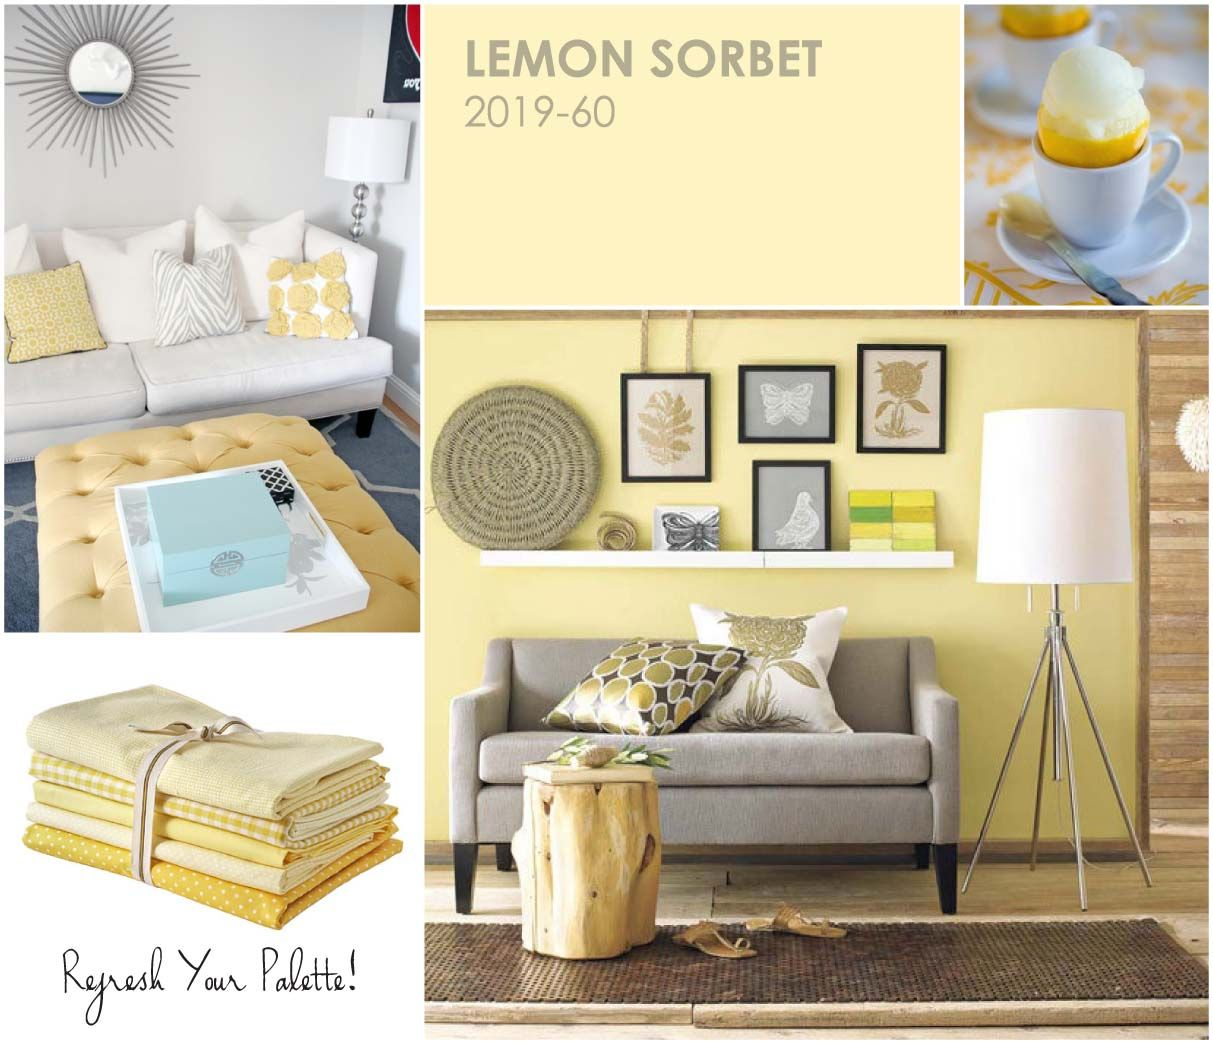 Lemon Sorbet - Refresh your palette, refresh your home.